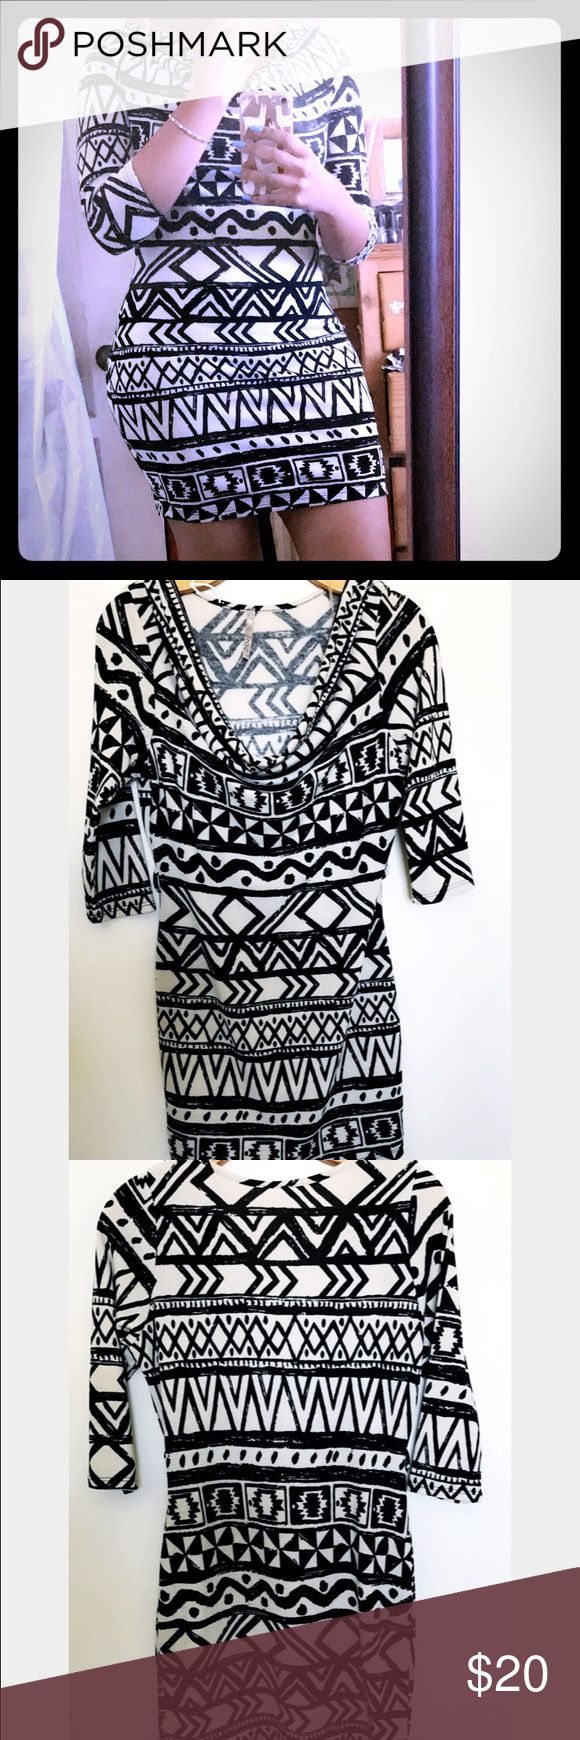 Aztec print dress Aztec print black and white dress with 3/4 sleeve with a scoop neck. Great from a dinner party with friends, goes just a little bit above the knee Dresses Midi